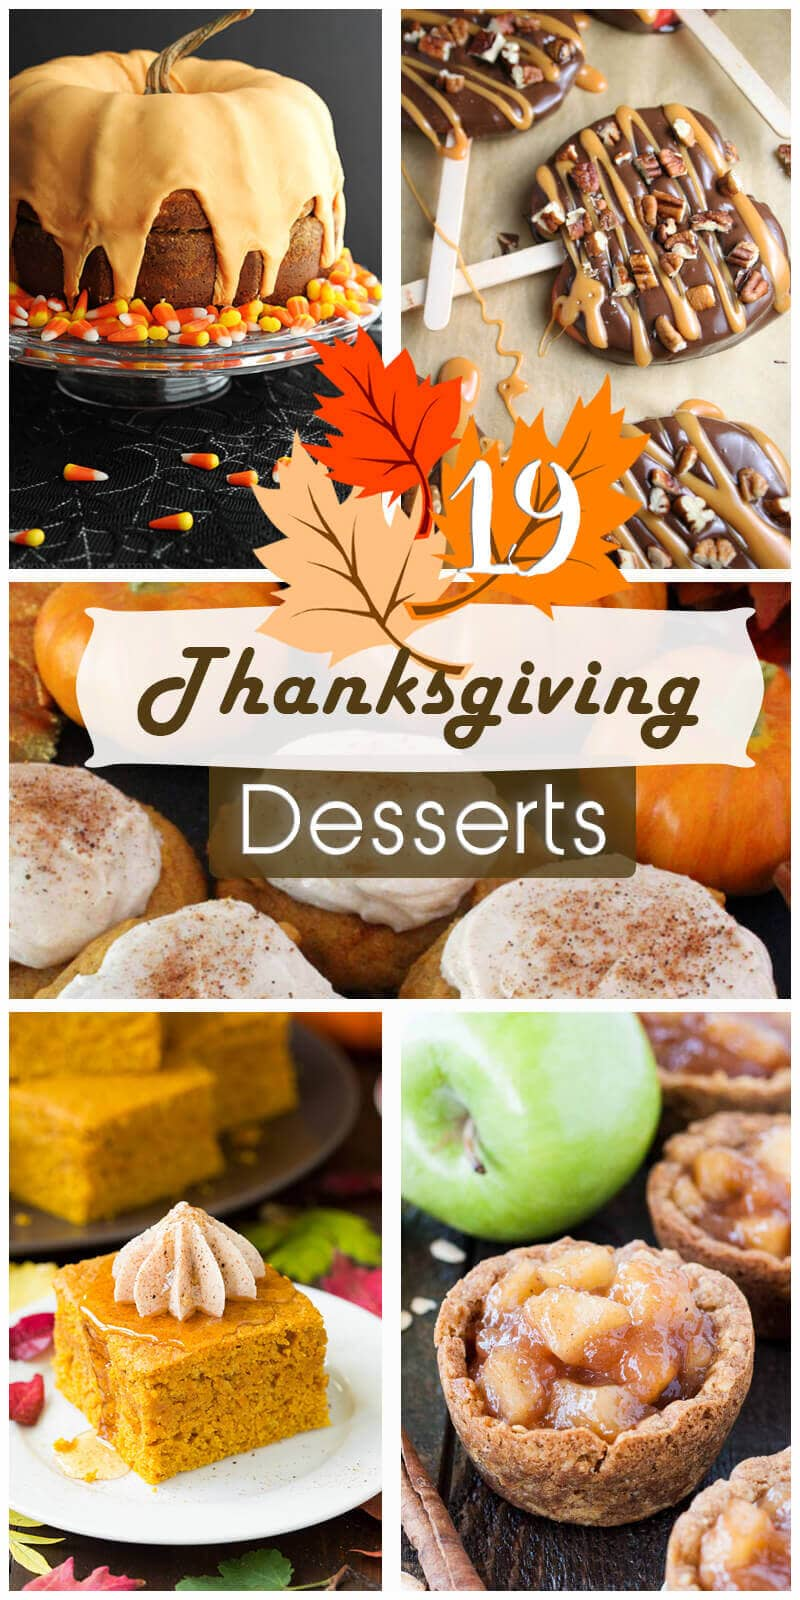 19 Decadent Thanksgiving Dessert Recipes to Finish your Holiday Dinner